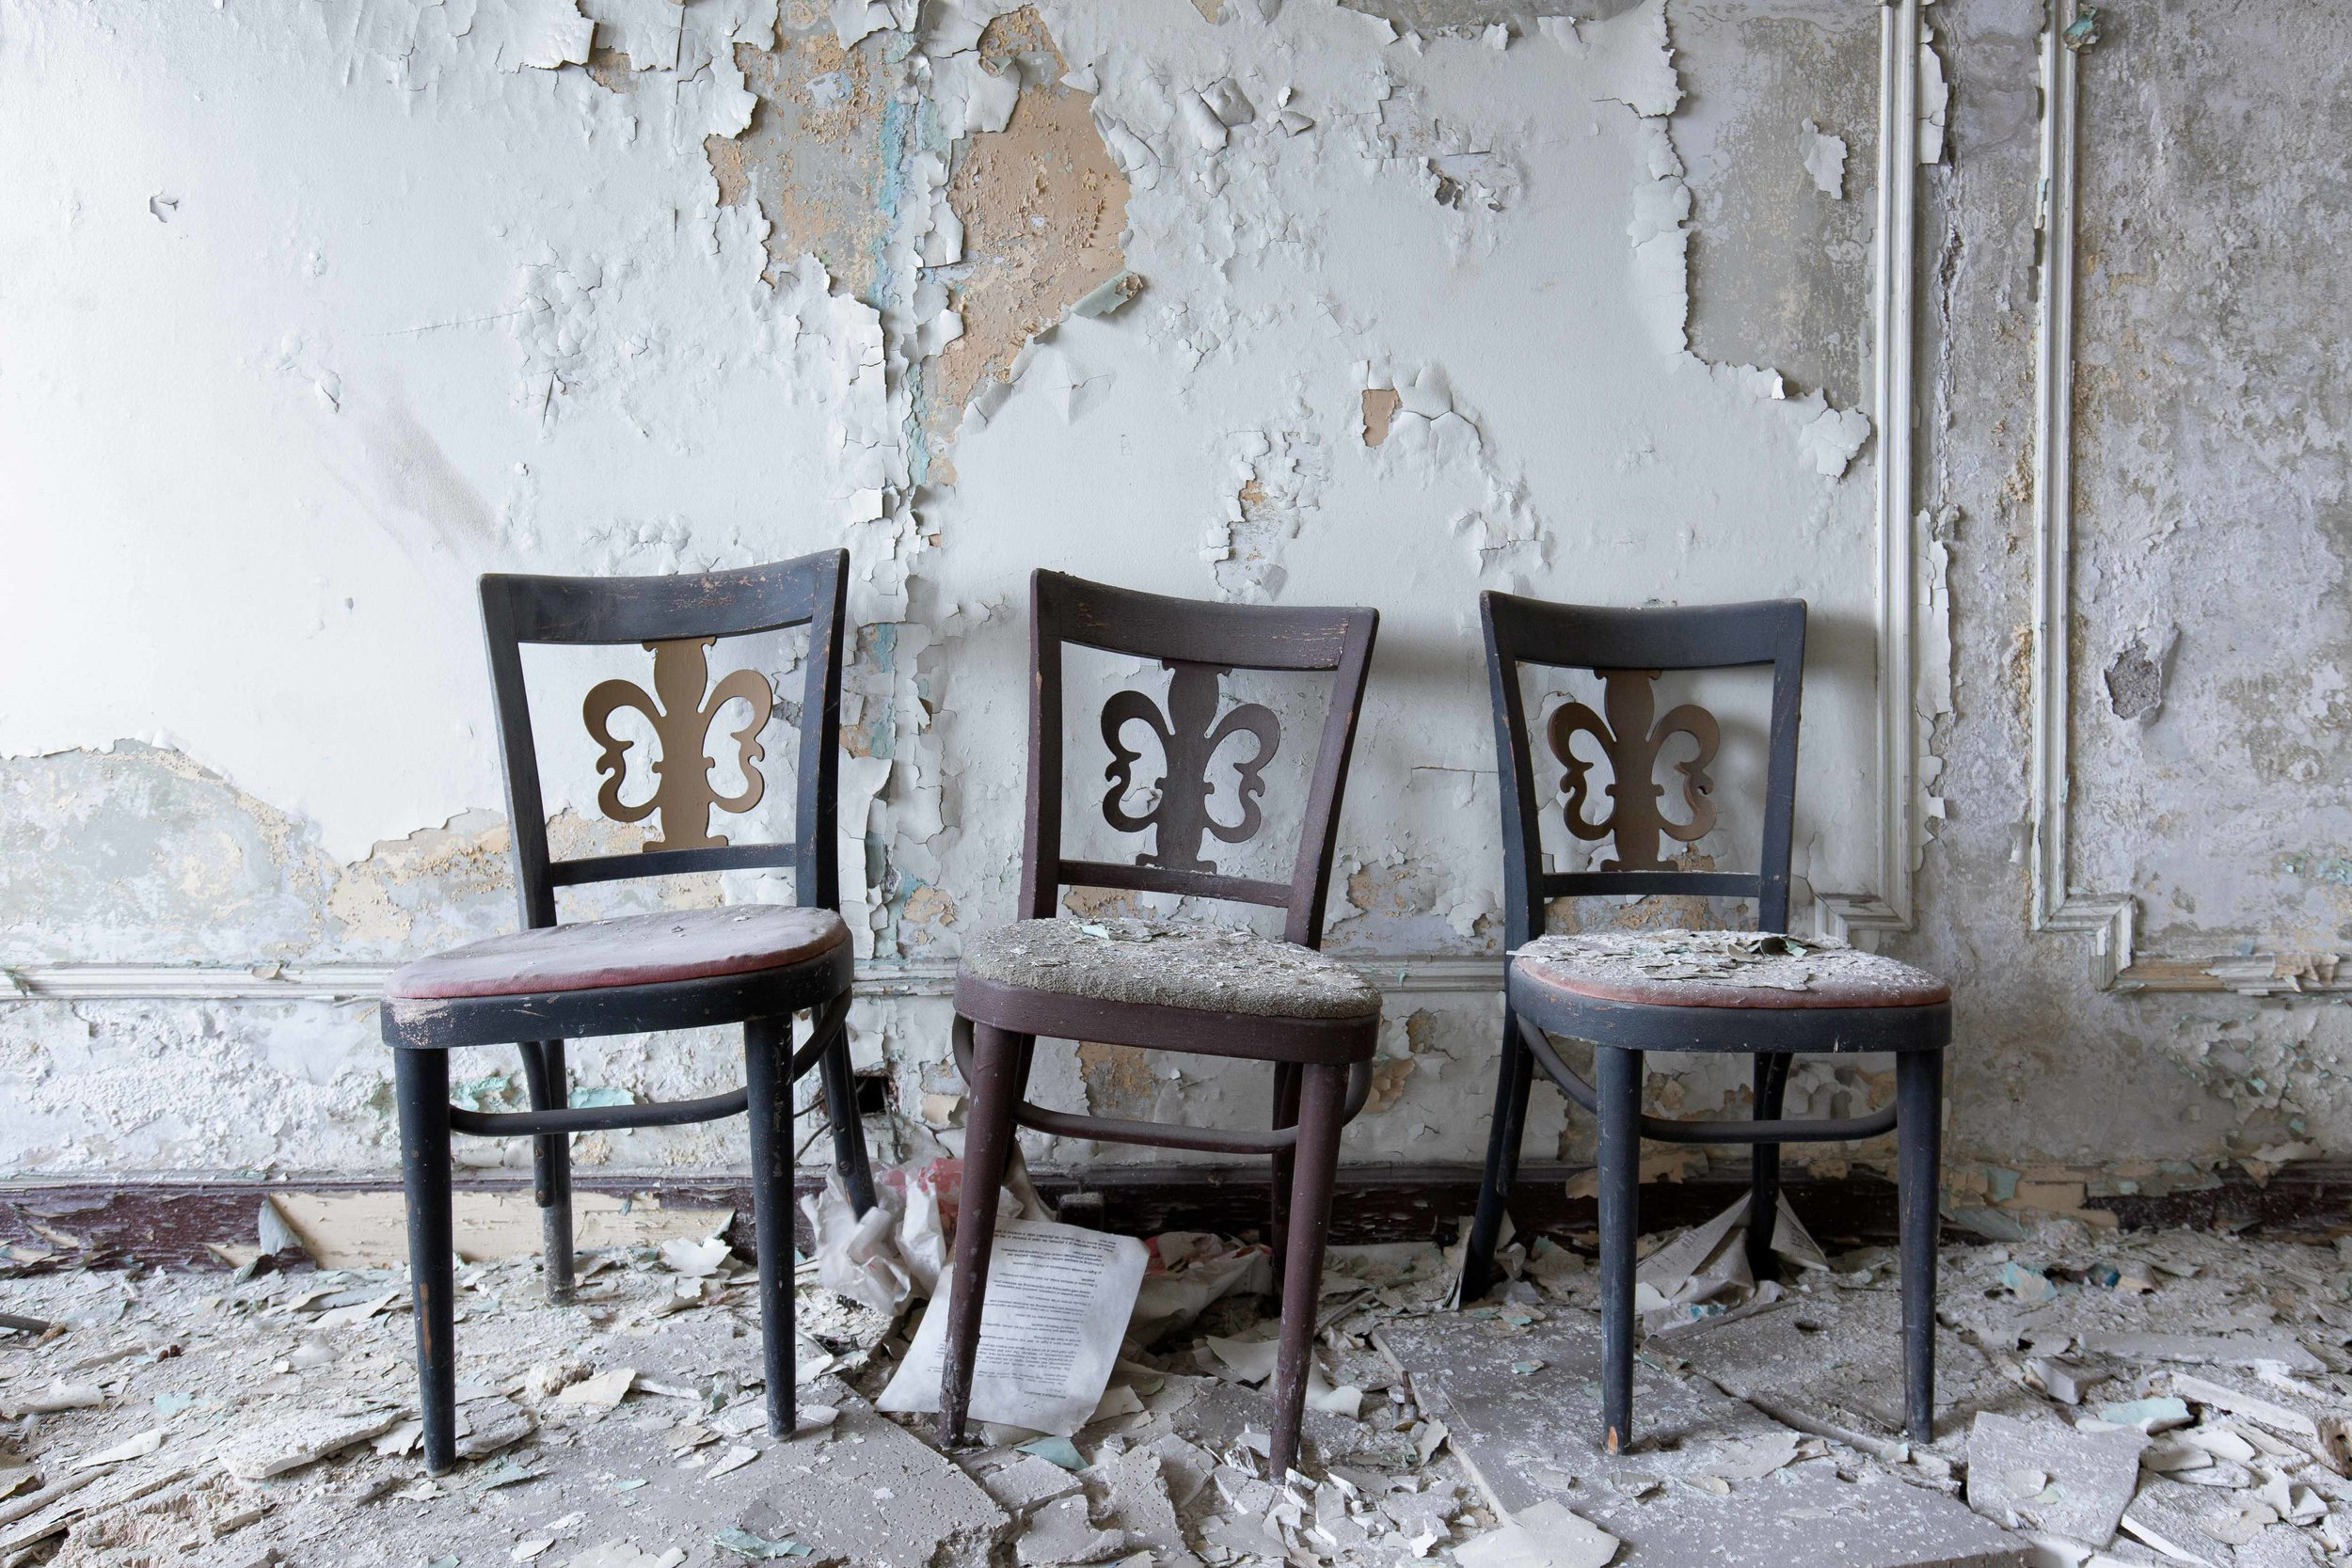 Park-Ave-Hotel-Three-Chairs.jpg